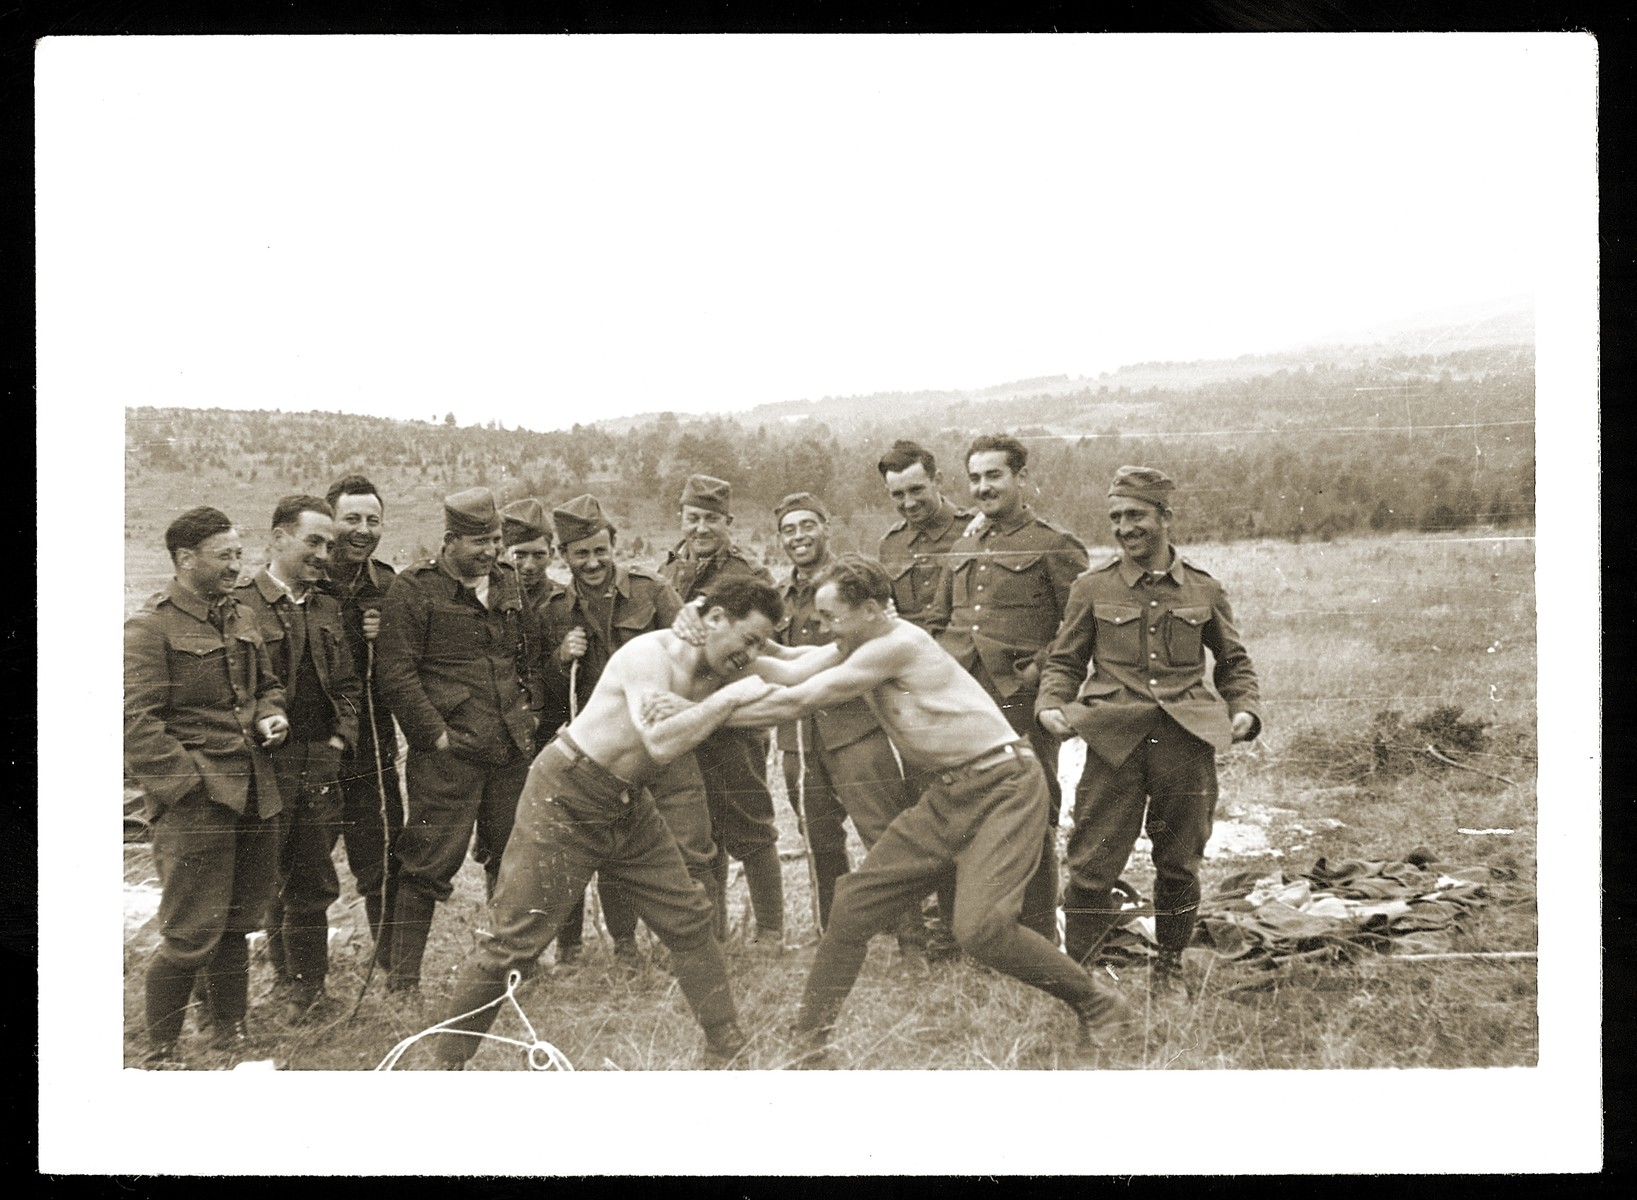 Two Jewish soldiers in the Slovak army wrestle while others look on.  The Jewish units were assigned to manual labor and not permitted to carry weapons.